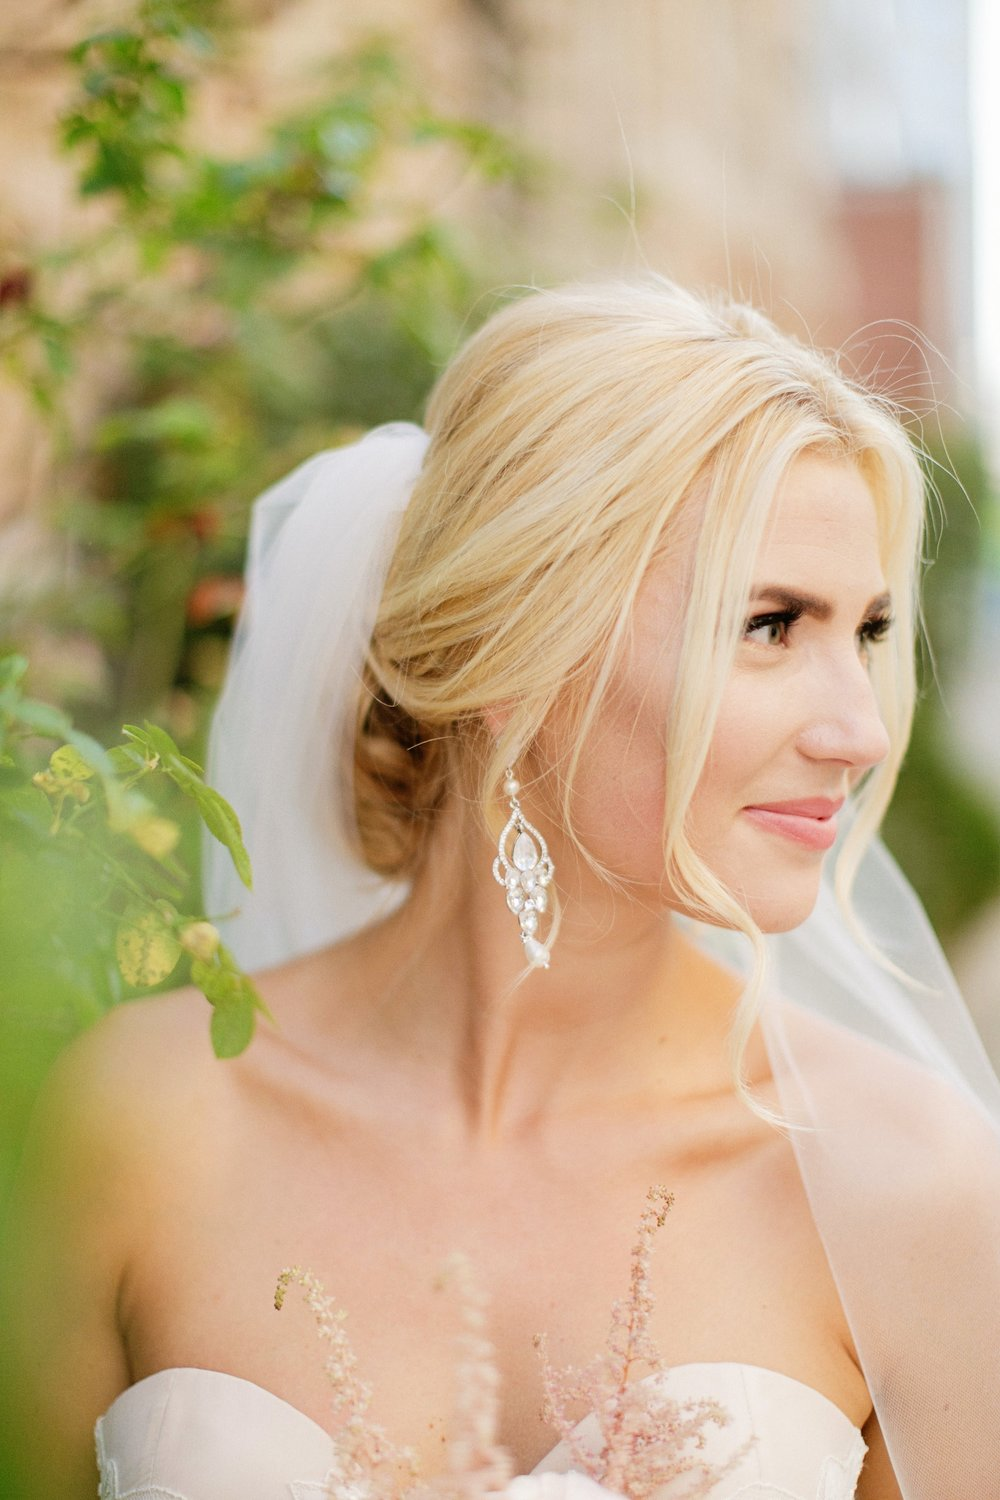 Bridal Earrings - Chandelier Earrings